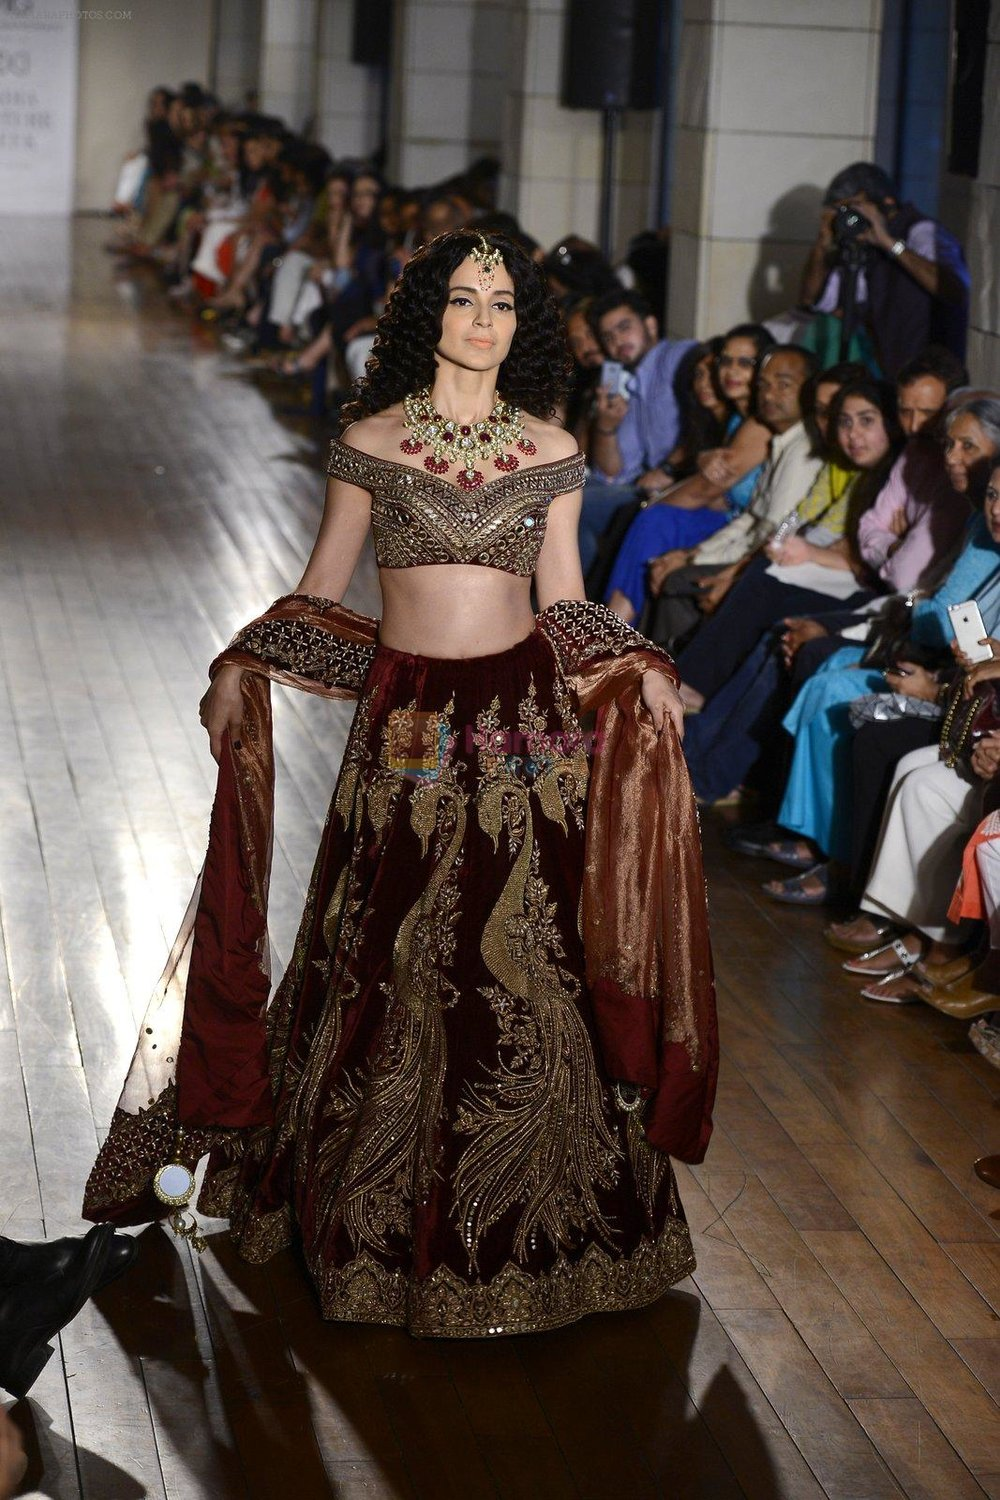 Kangana Ranaut walks for Manav Gangwani latest collection Begum-e-Jannat at the FDCI India Couture Week 2016 on 24 July 2016 shown to user